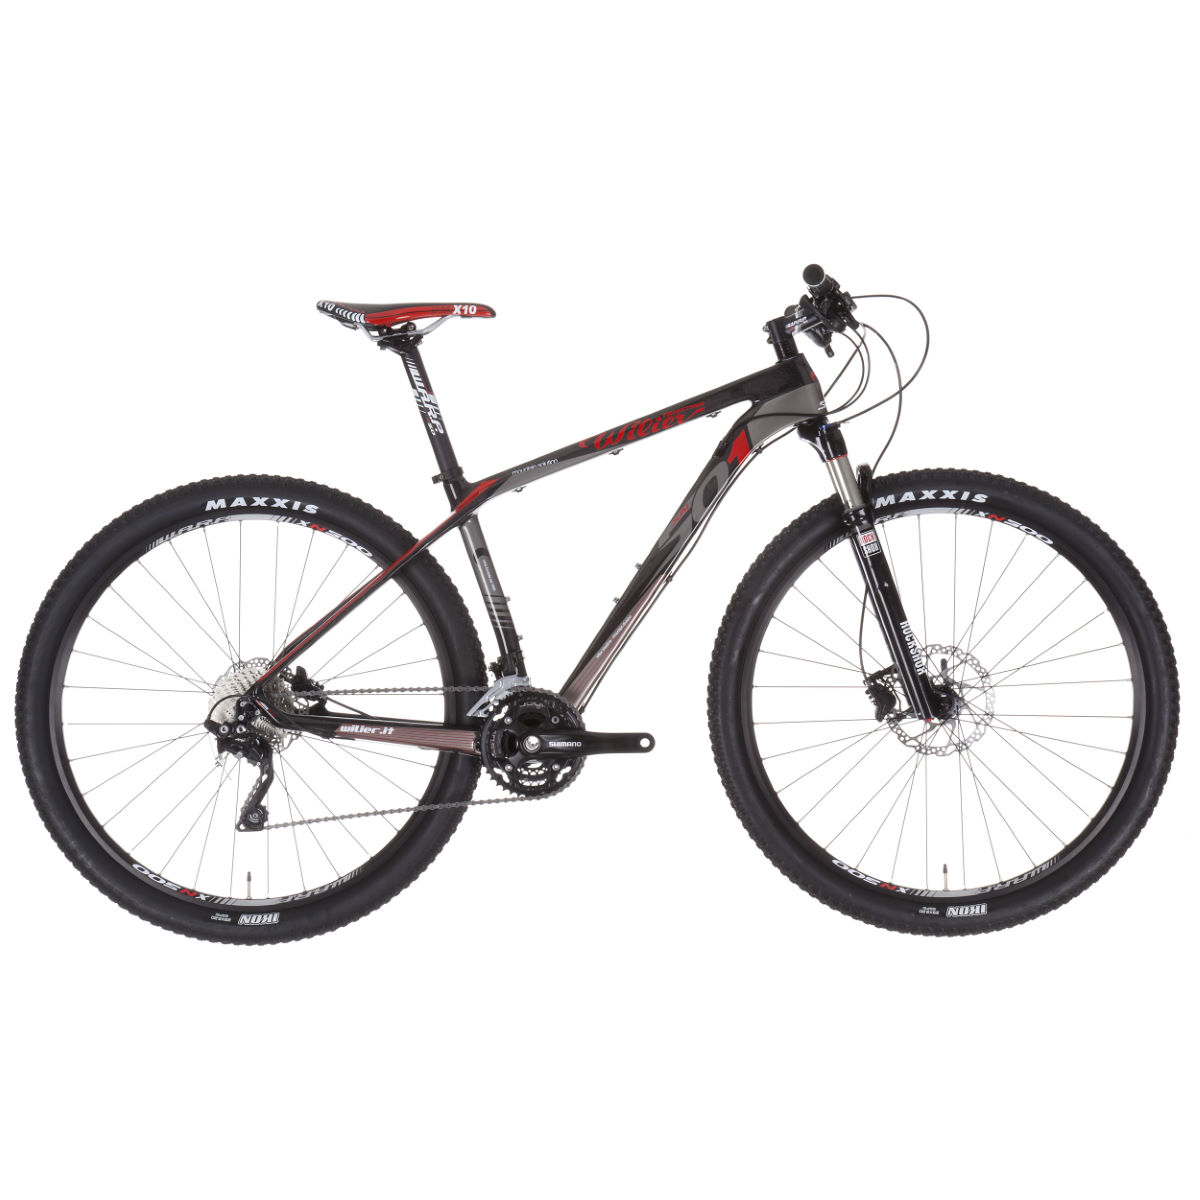 Wilier 501 XN Shimano Mix 29er 2014 / Shop Soiled .....